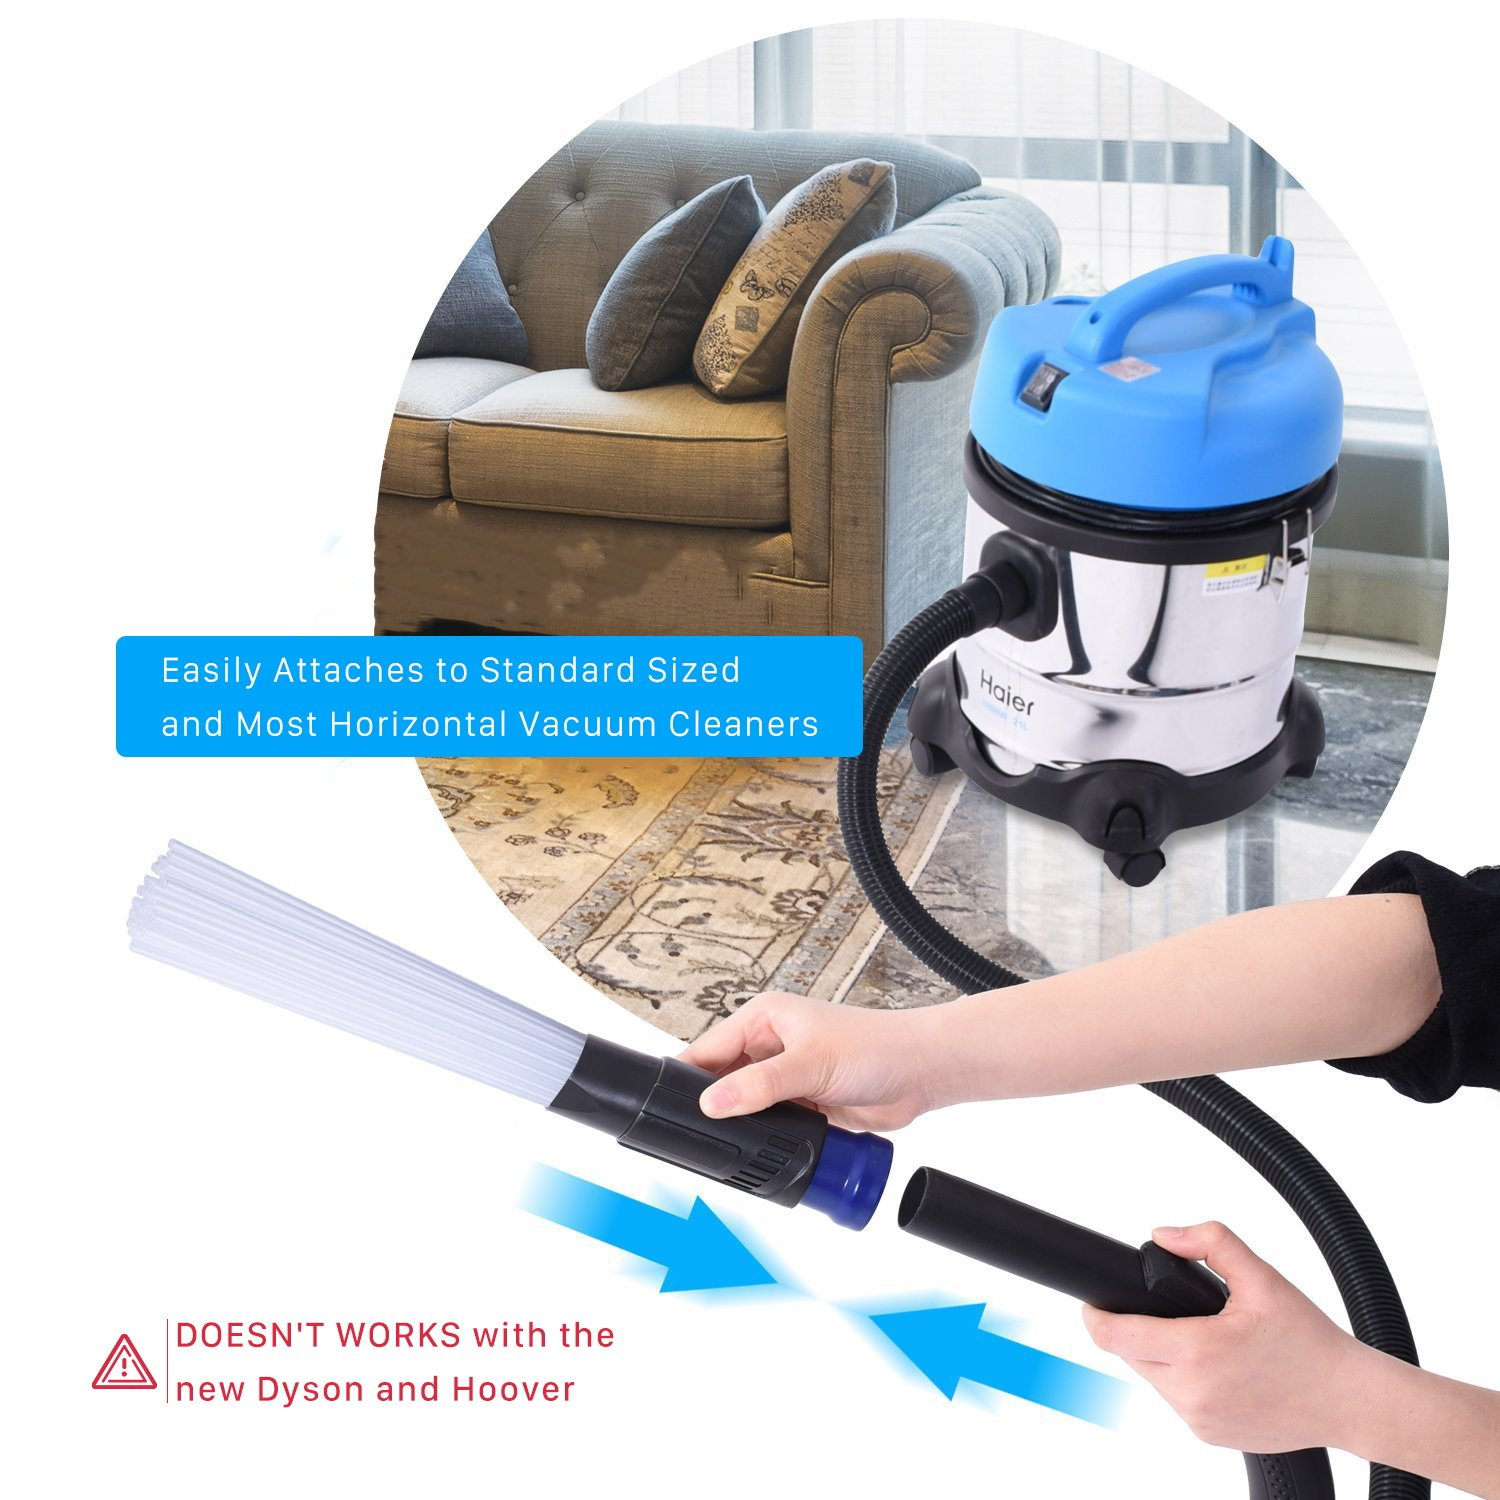 NTMY Dust Brush Cleaner, Dust Dirt Remover Universal Vacuum Attachment Cleaning Tools with 1.25\'\'/1.37\'\' (32/35mm) Inner Diameter Interface Hose, Strong Suction